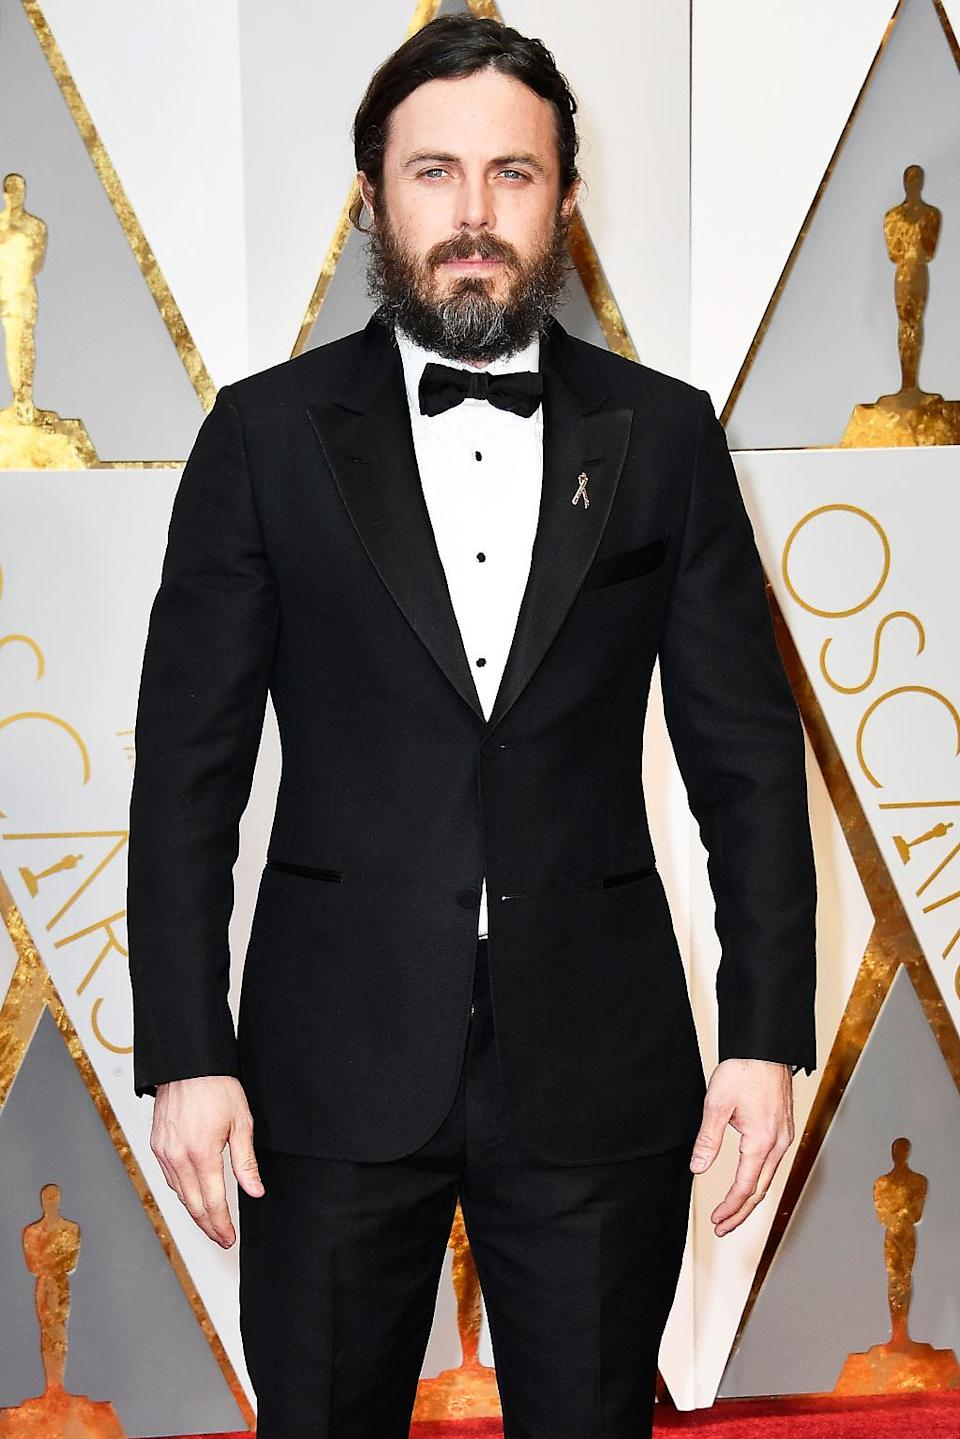 <p>Actor Casey Affleck attends the 89th Annual Academy Awards at Hollywood & Highland Center on Feb. 26, 2017. (Photo by Frazer Harrison/Getty Images) </p>